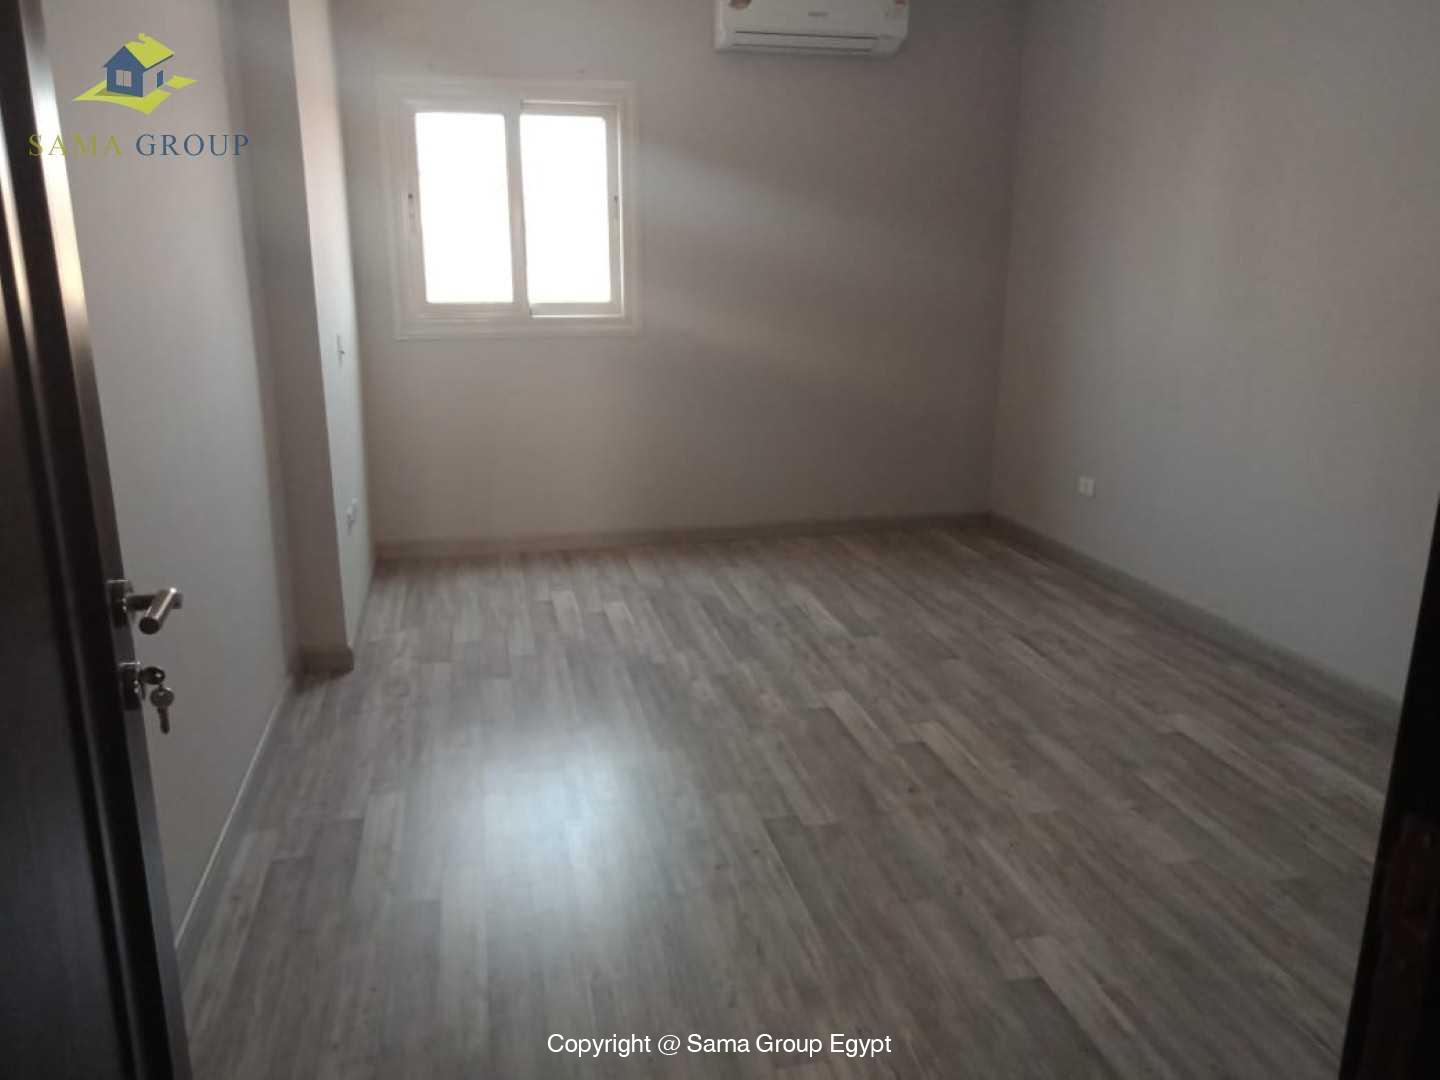 Penthouse For Rent In Maadi Sarayat,Semi furnished,Penthouse NO #17